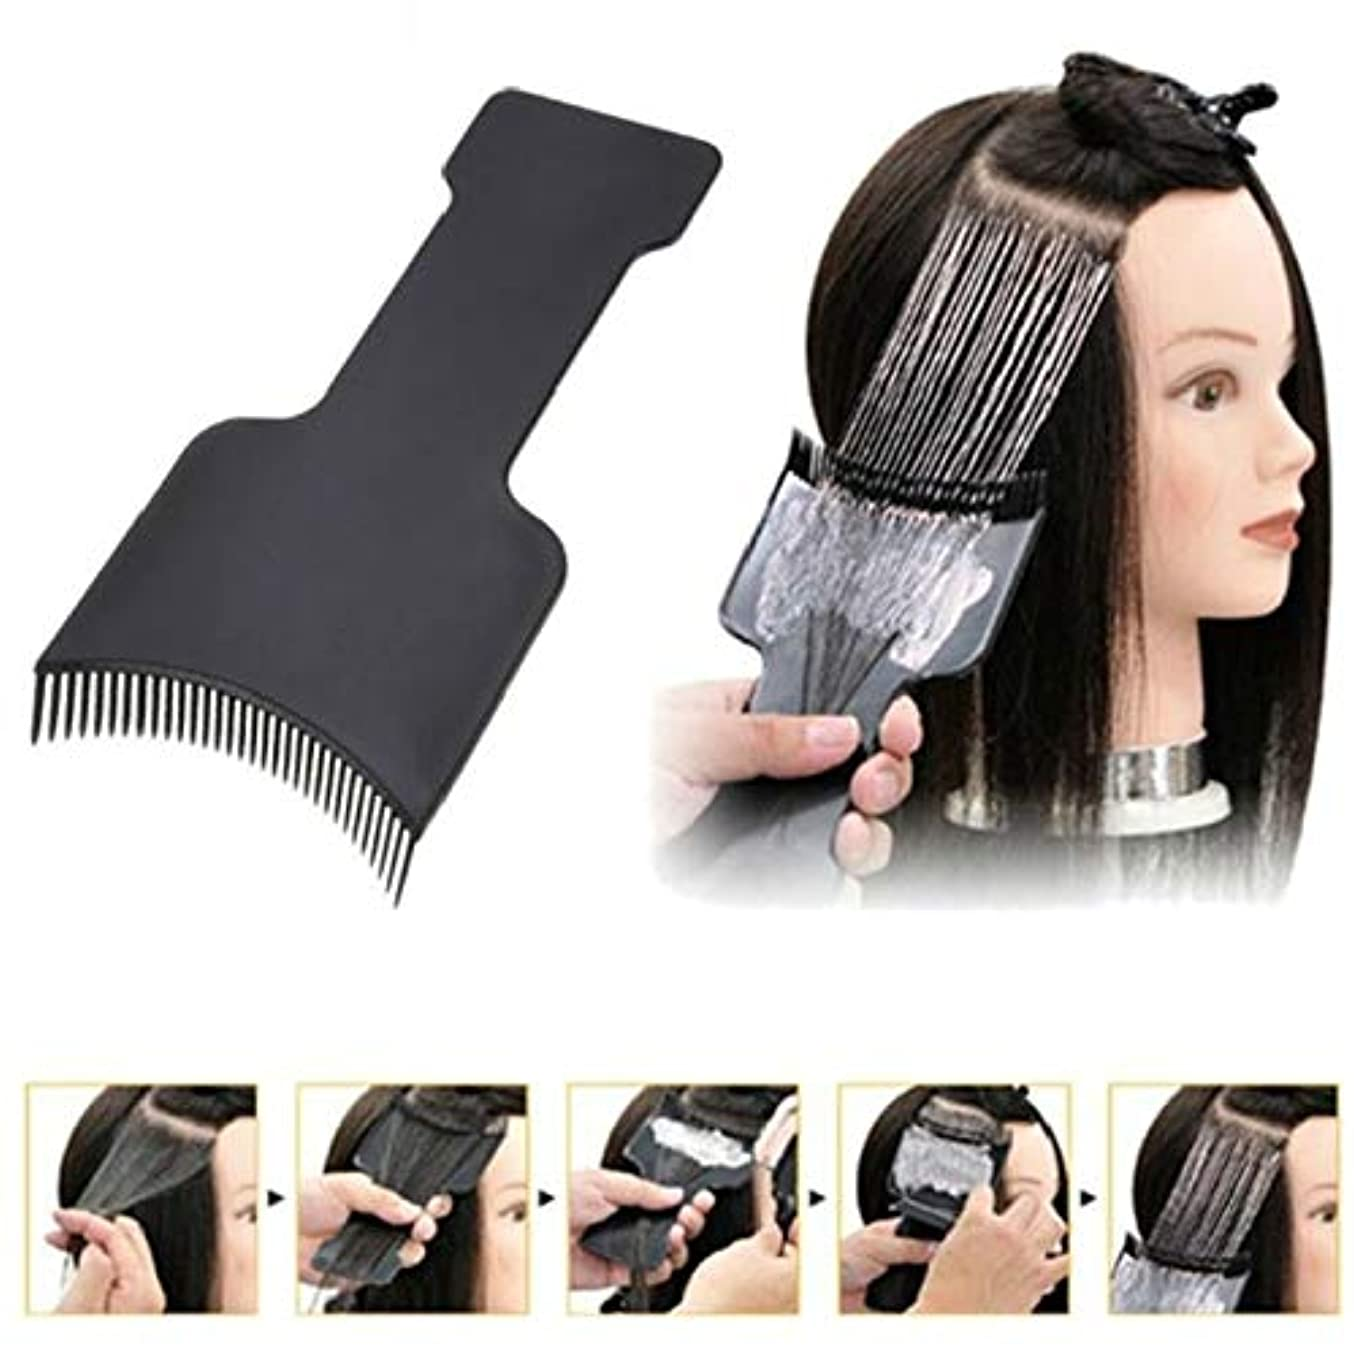 保存ランチ耐えられない2 Size/set Professional Fashion Hairdressing Hair Applicator Brush Dispensing Salon Hair Coloring Dyeing Pick...